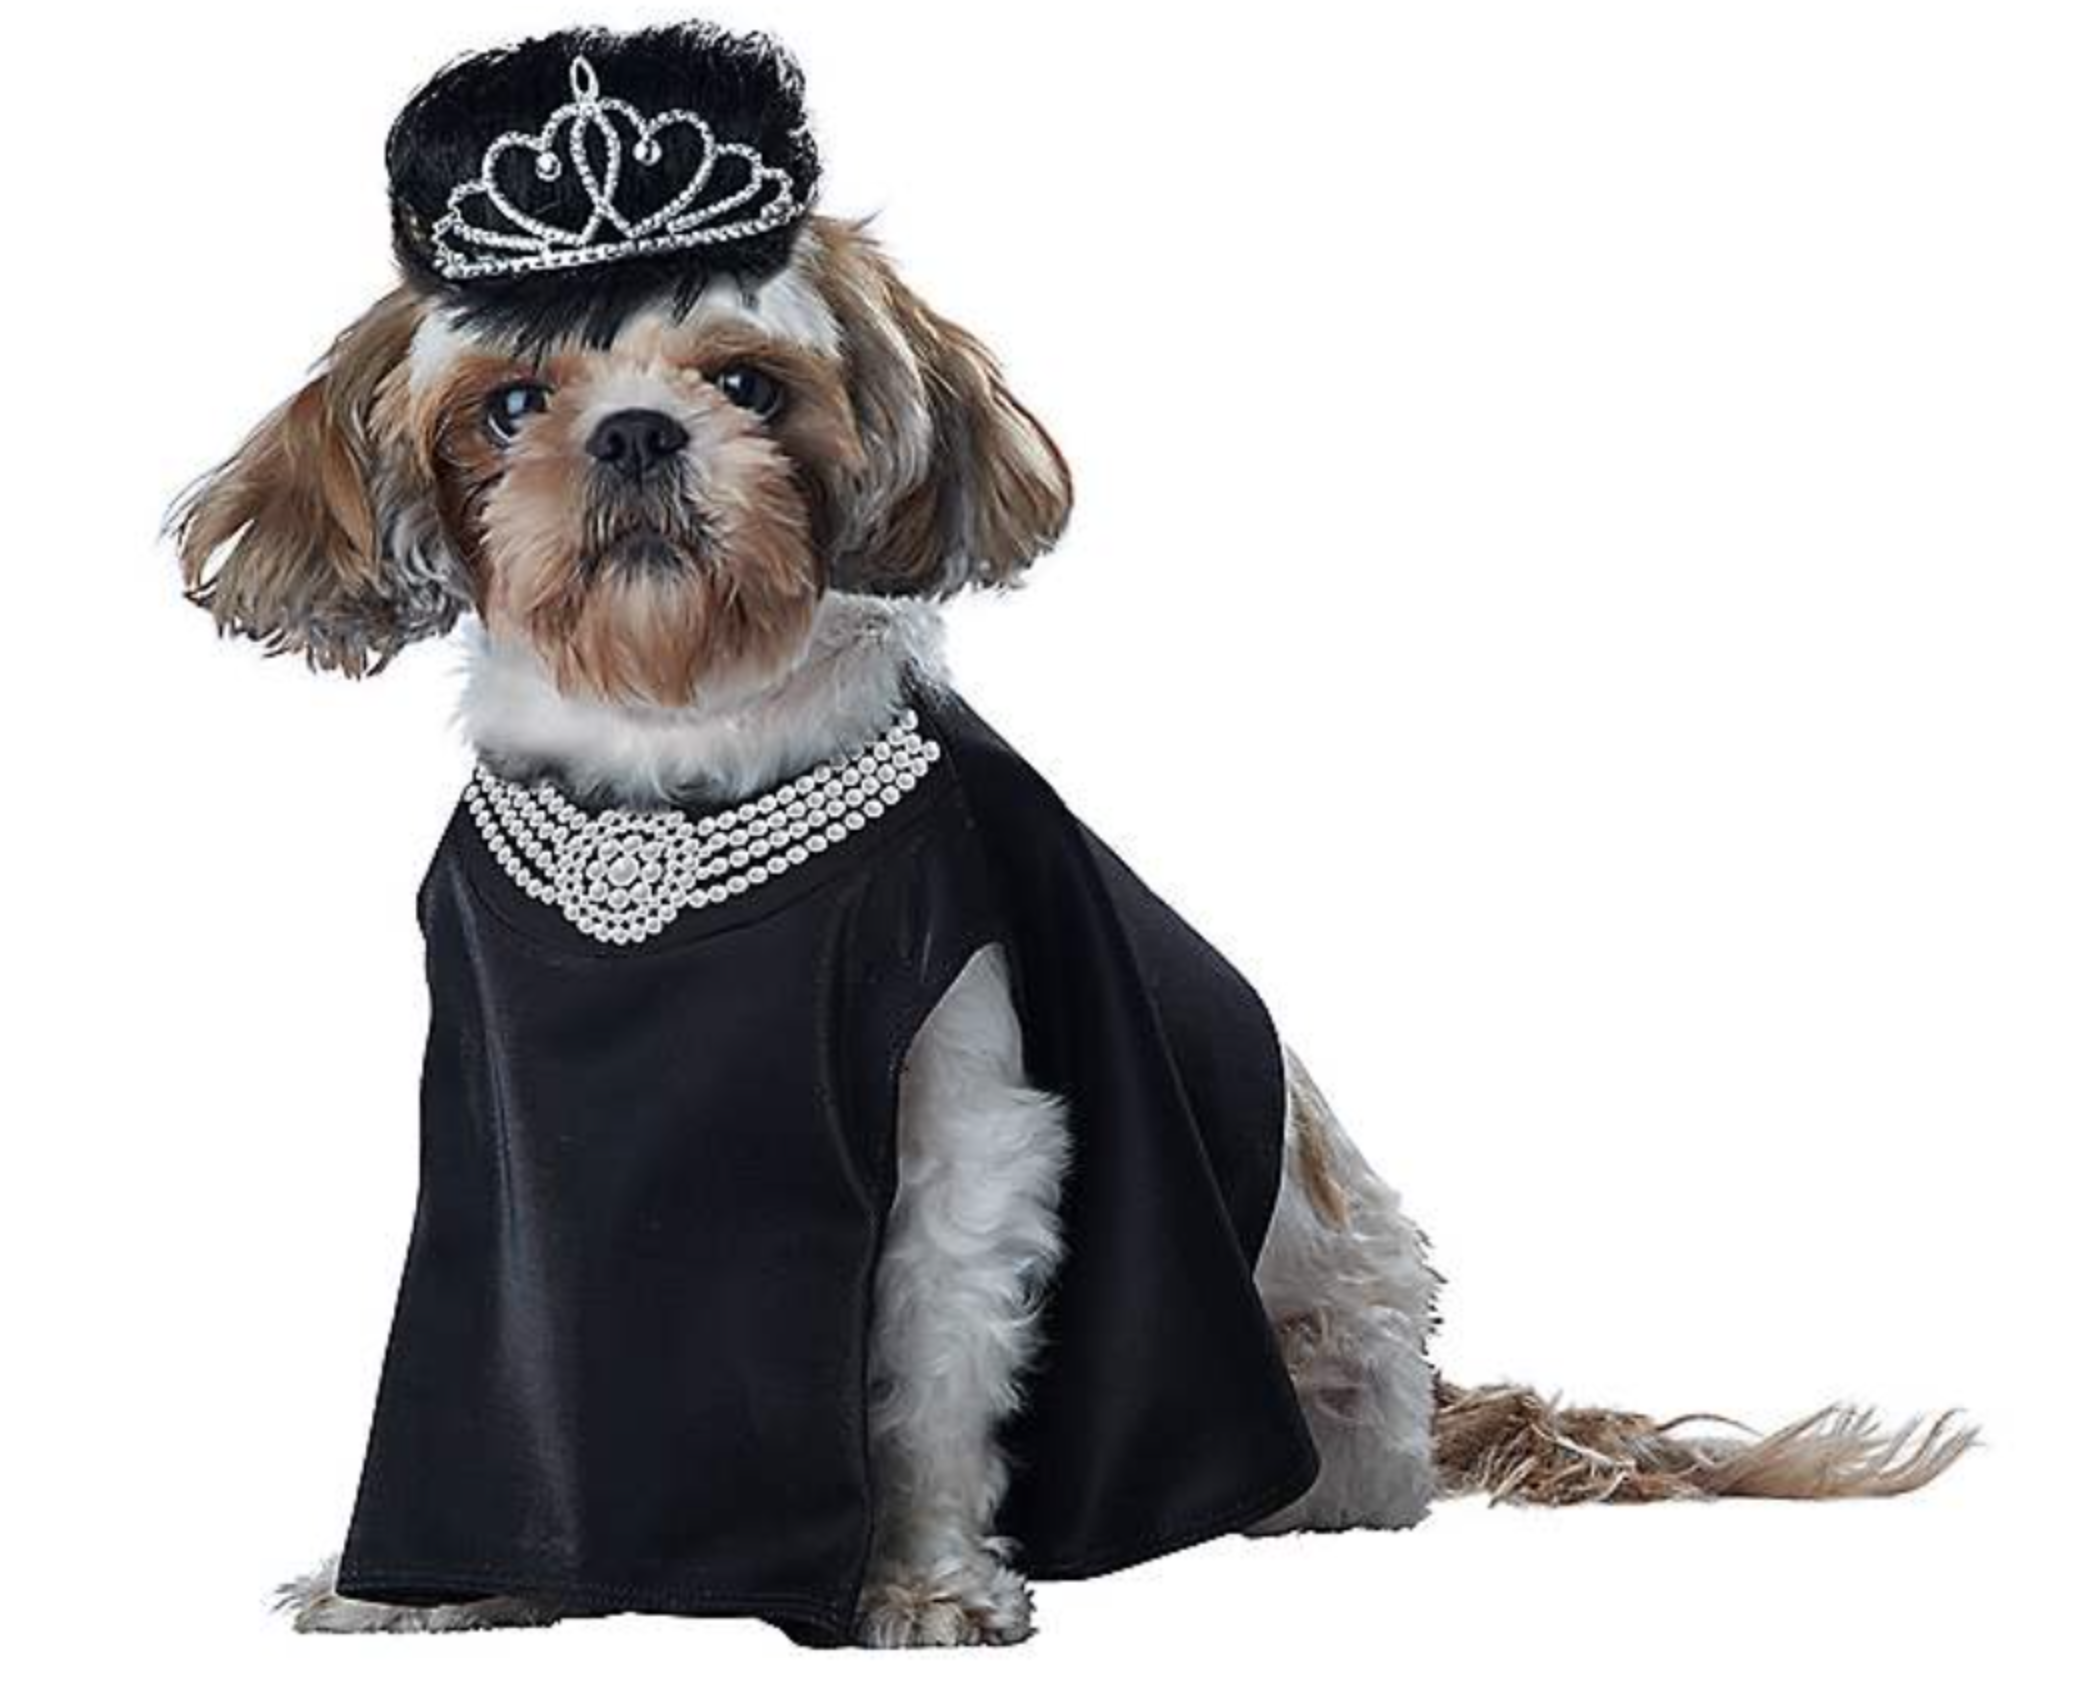 a dog wearing a black gown with fake pearls and a brown wig with a tiara